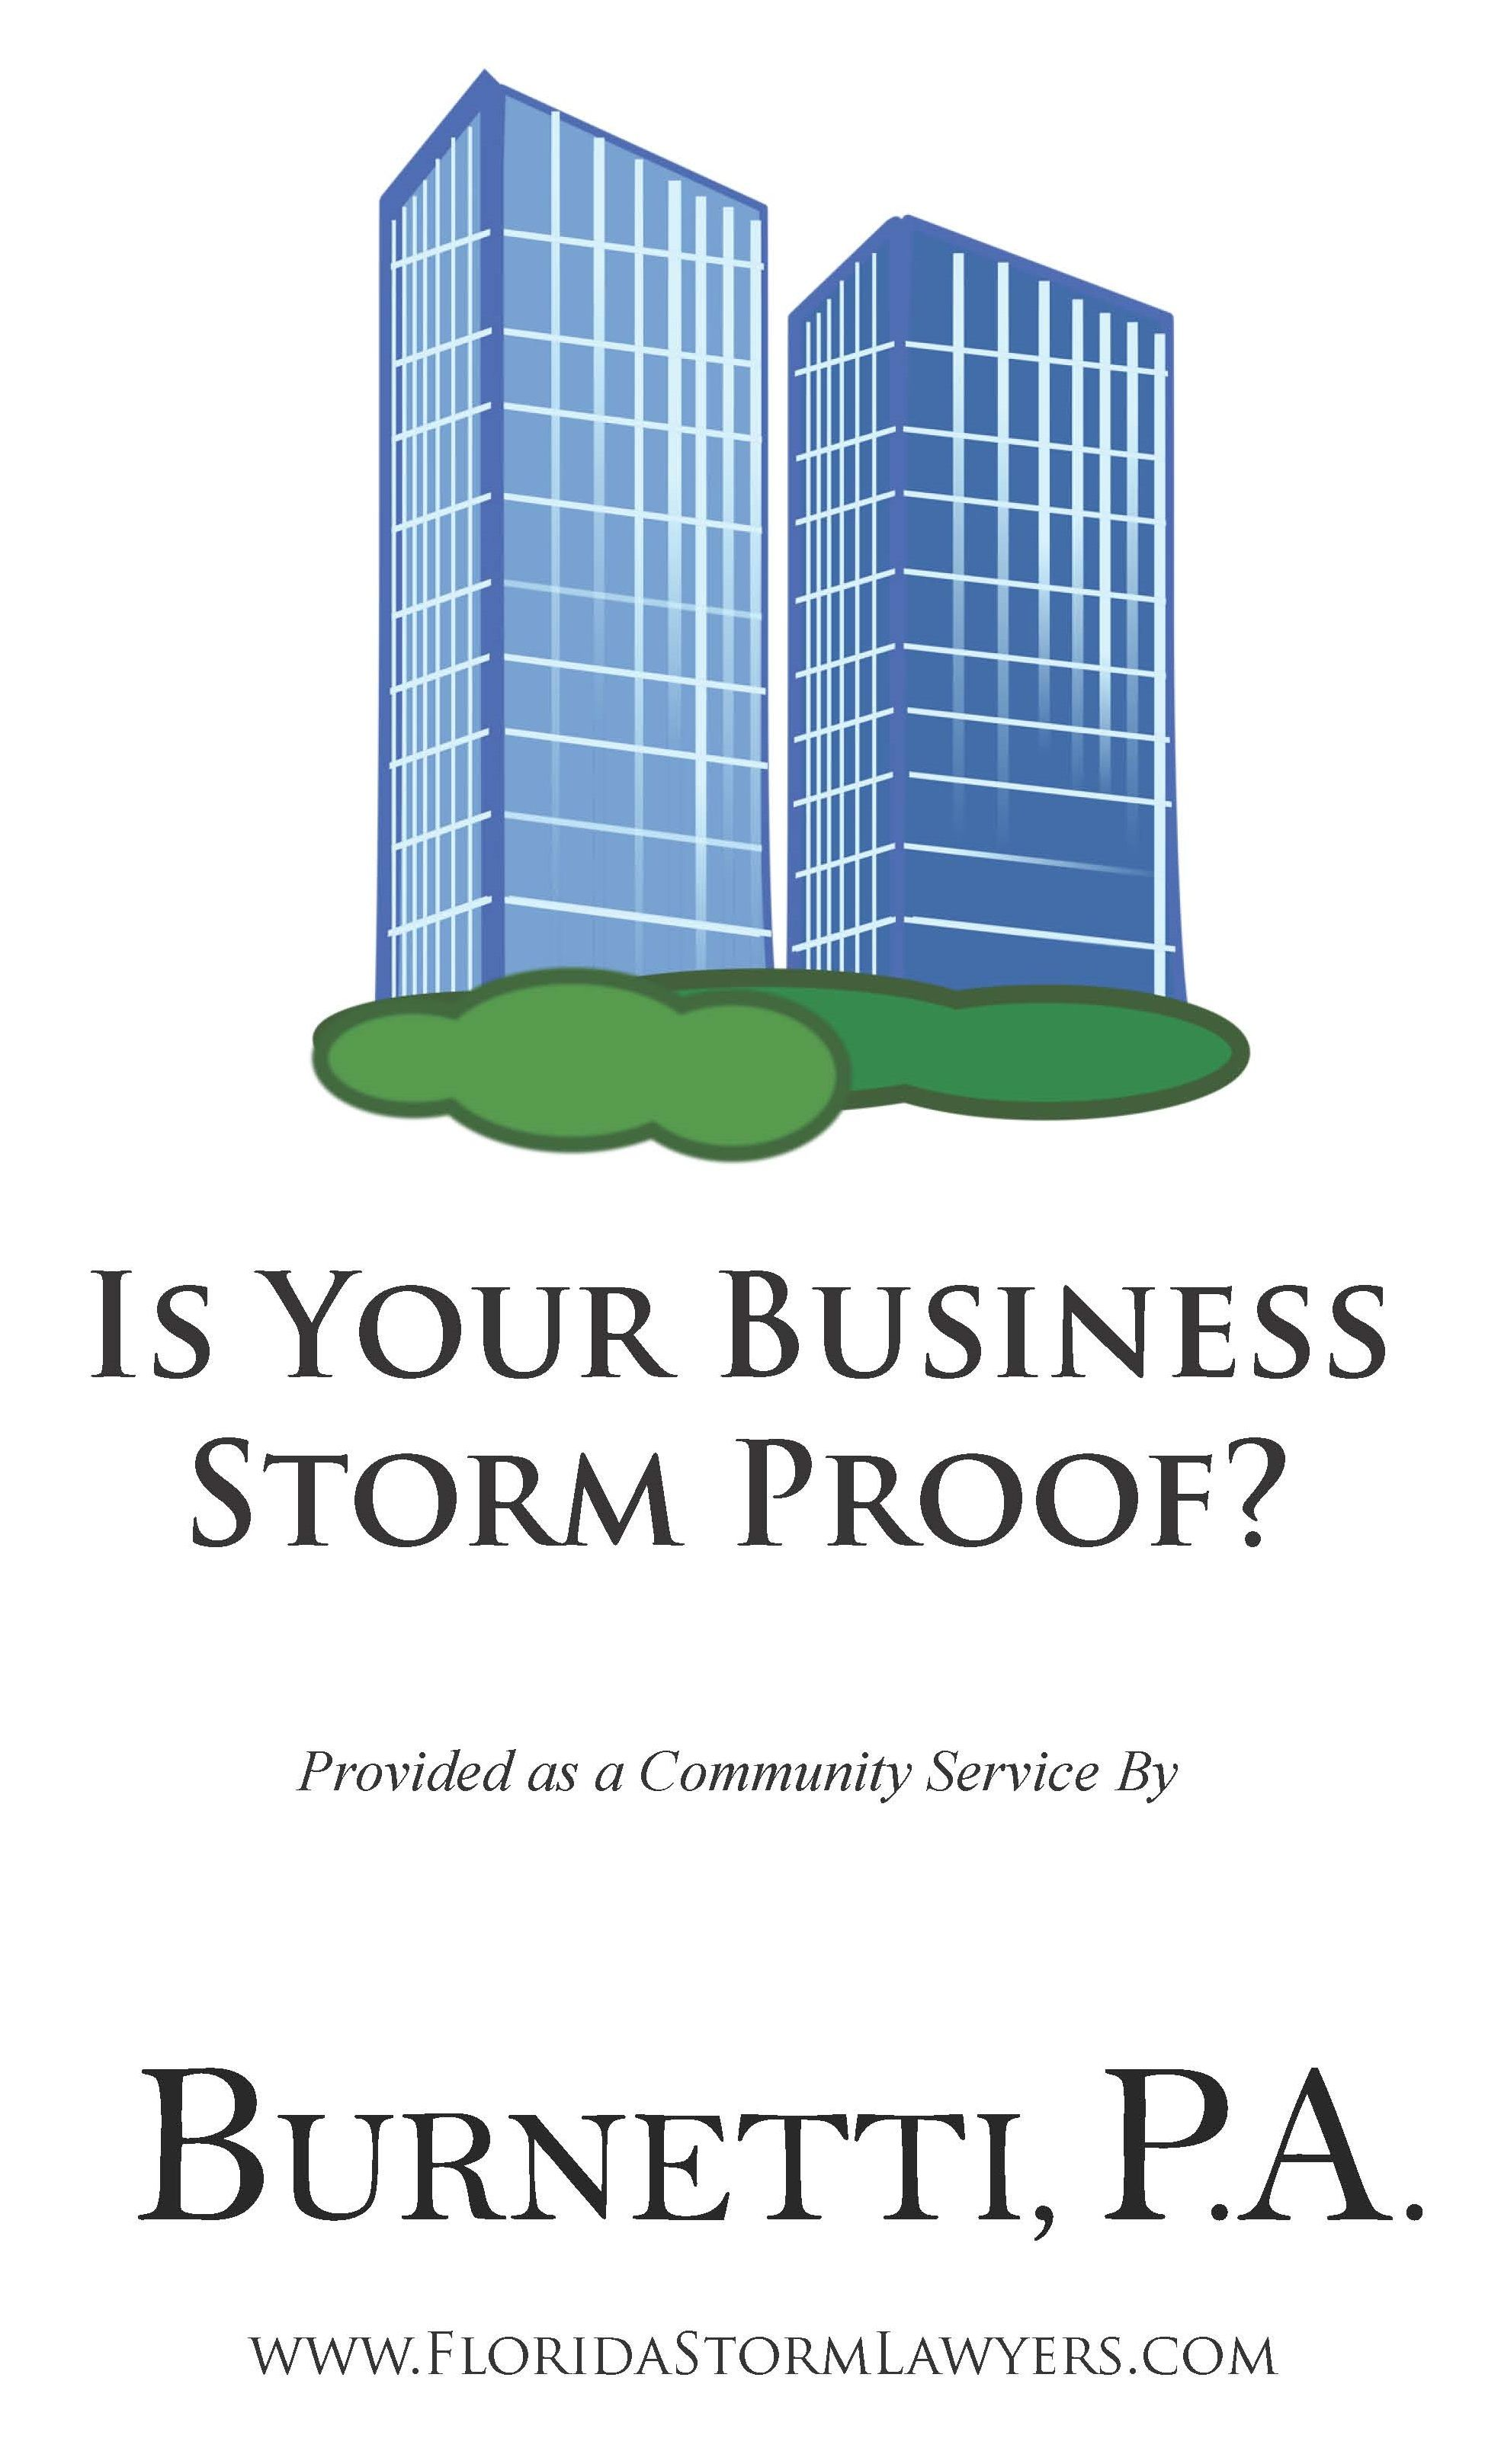 Download Your Free Commercial Insurance Claim Brochure Http Www